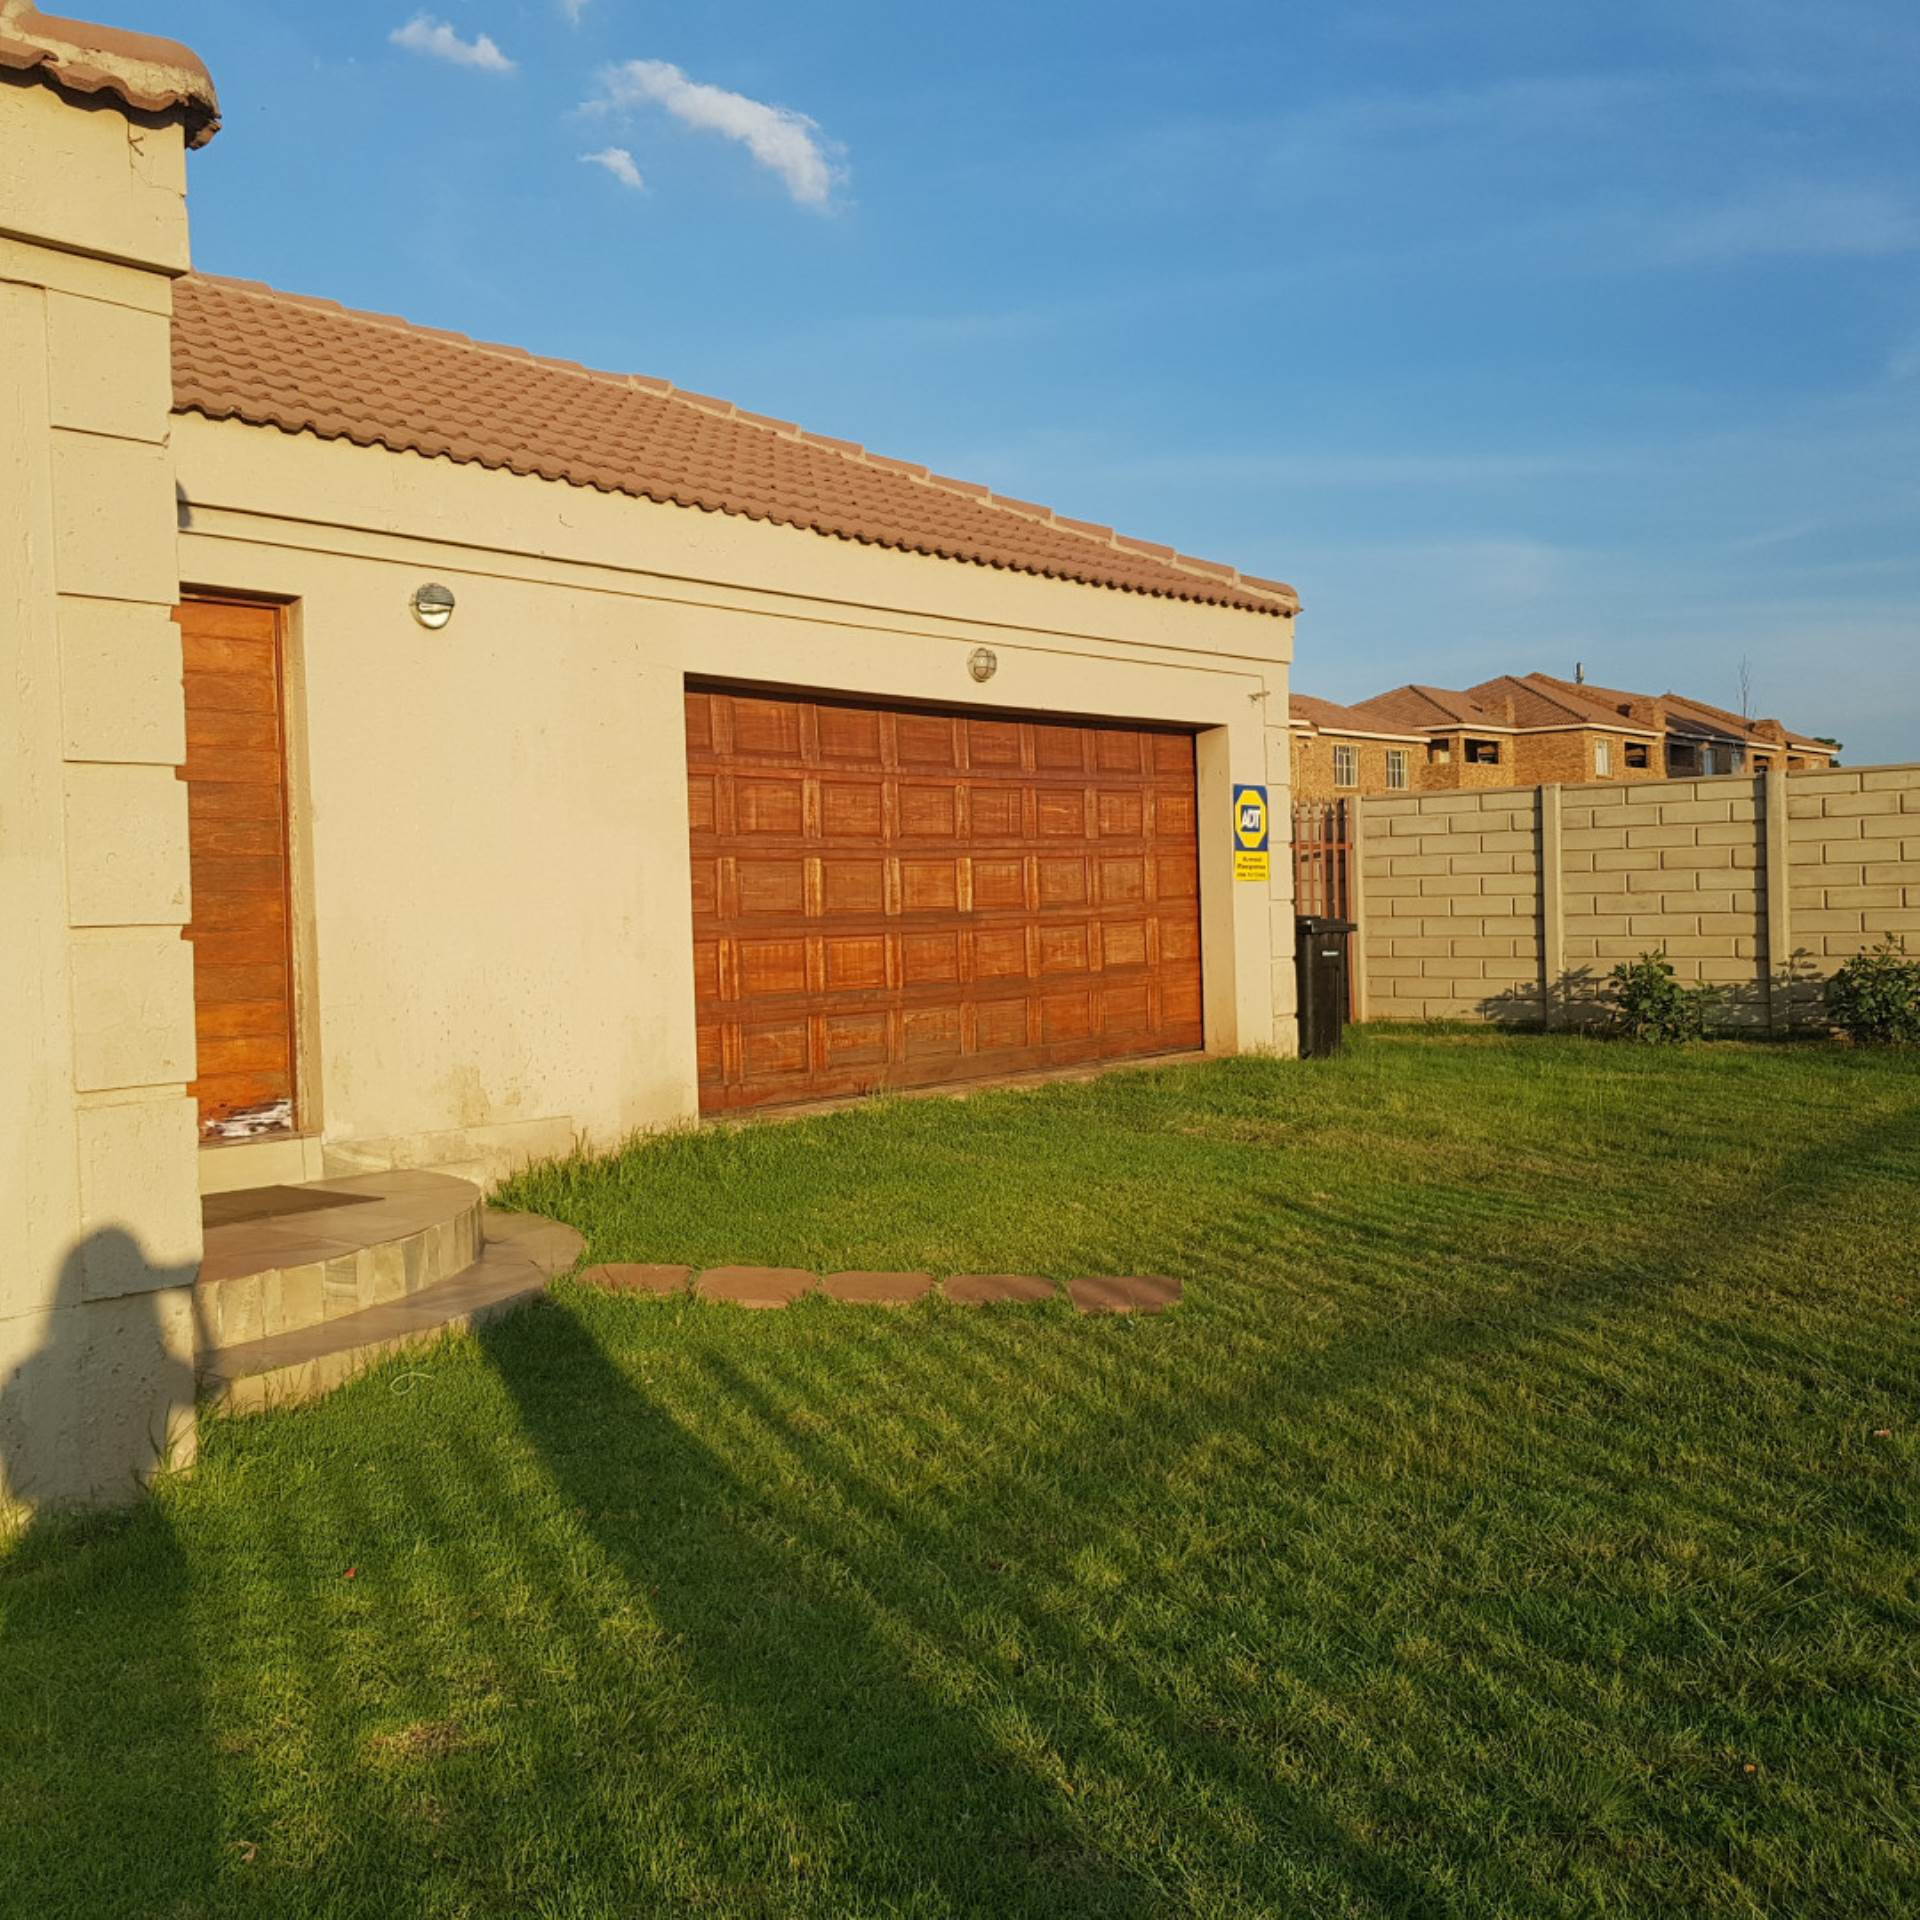 3 BedroomHouse For Sale In Krugersrus